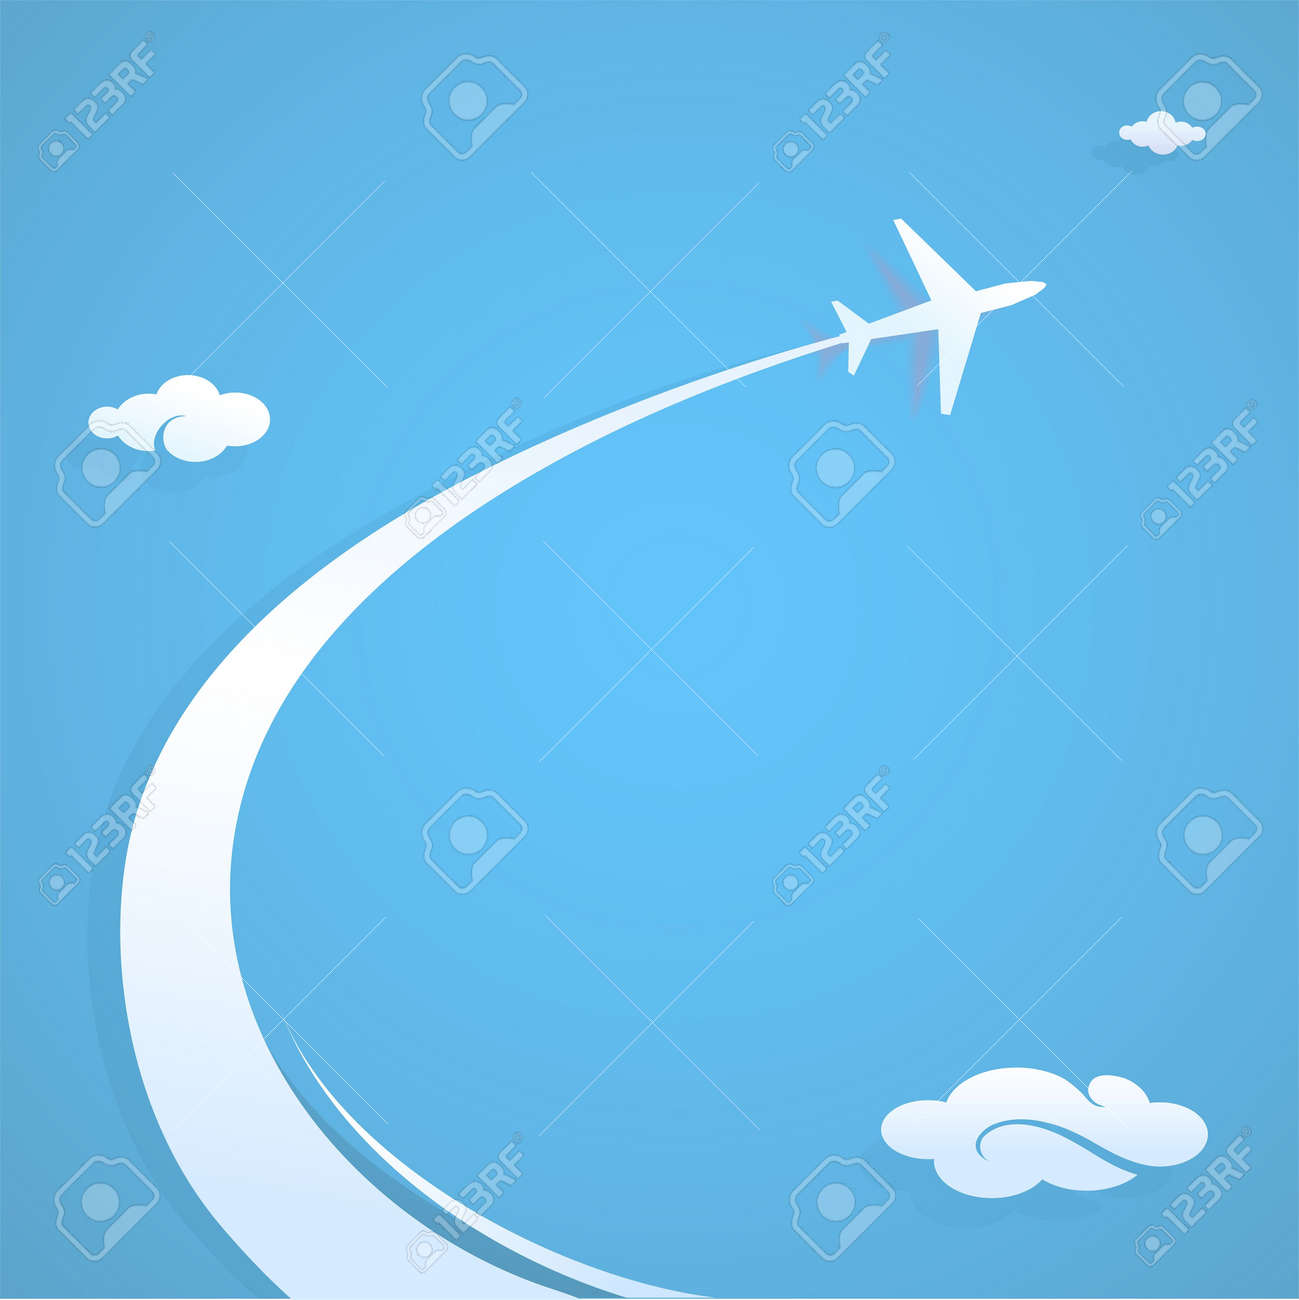 Plane trail graphic design illustration with copy space - 21069559